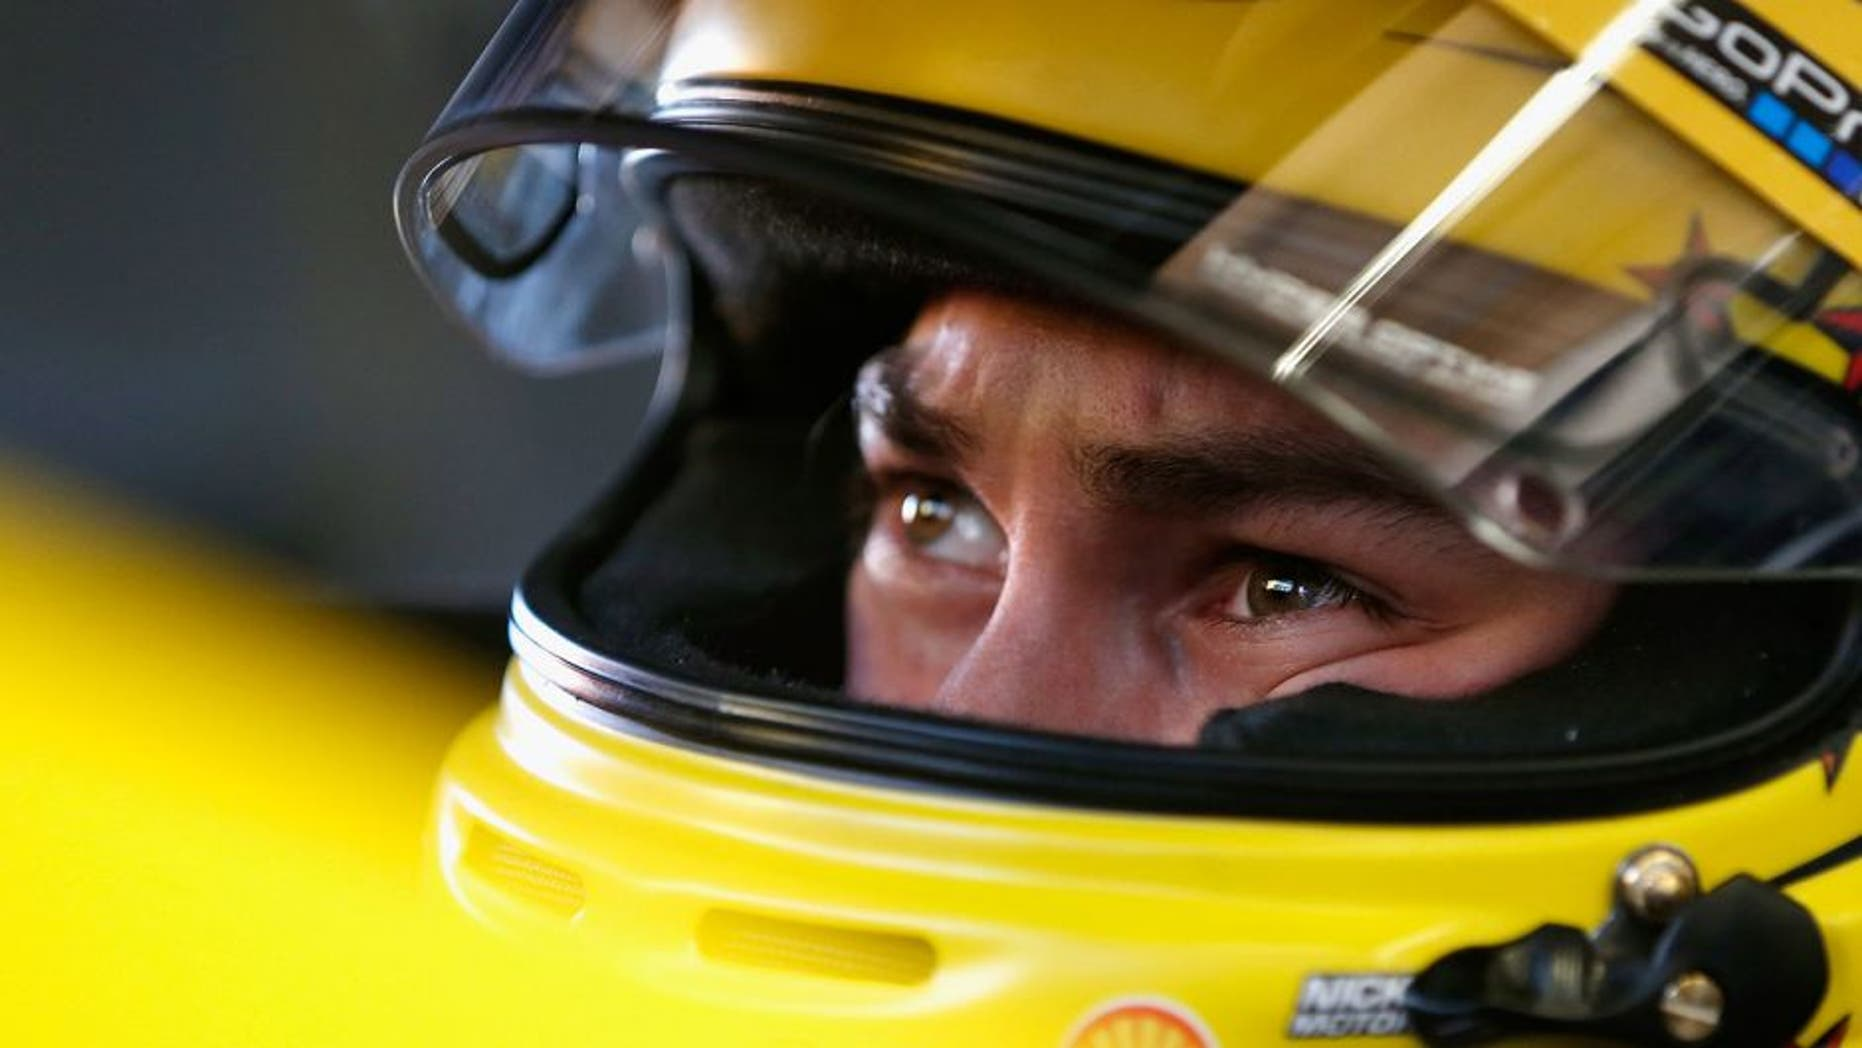 DAYTONA BEACH, FL - FEBRUARY 12: Joey Logano, driver of the #22 Shell Pennzoil Ford, sits in his car during practice for the NASCAR Sprint Cup Series Sprint Unlimited at Daytona International Speedway on February 12, 2016 in Daytona Beach, Florida. (Photo by Brian Lawdermilk/Getty Images)